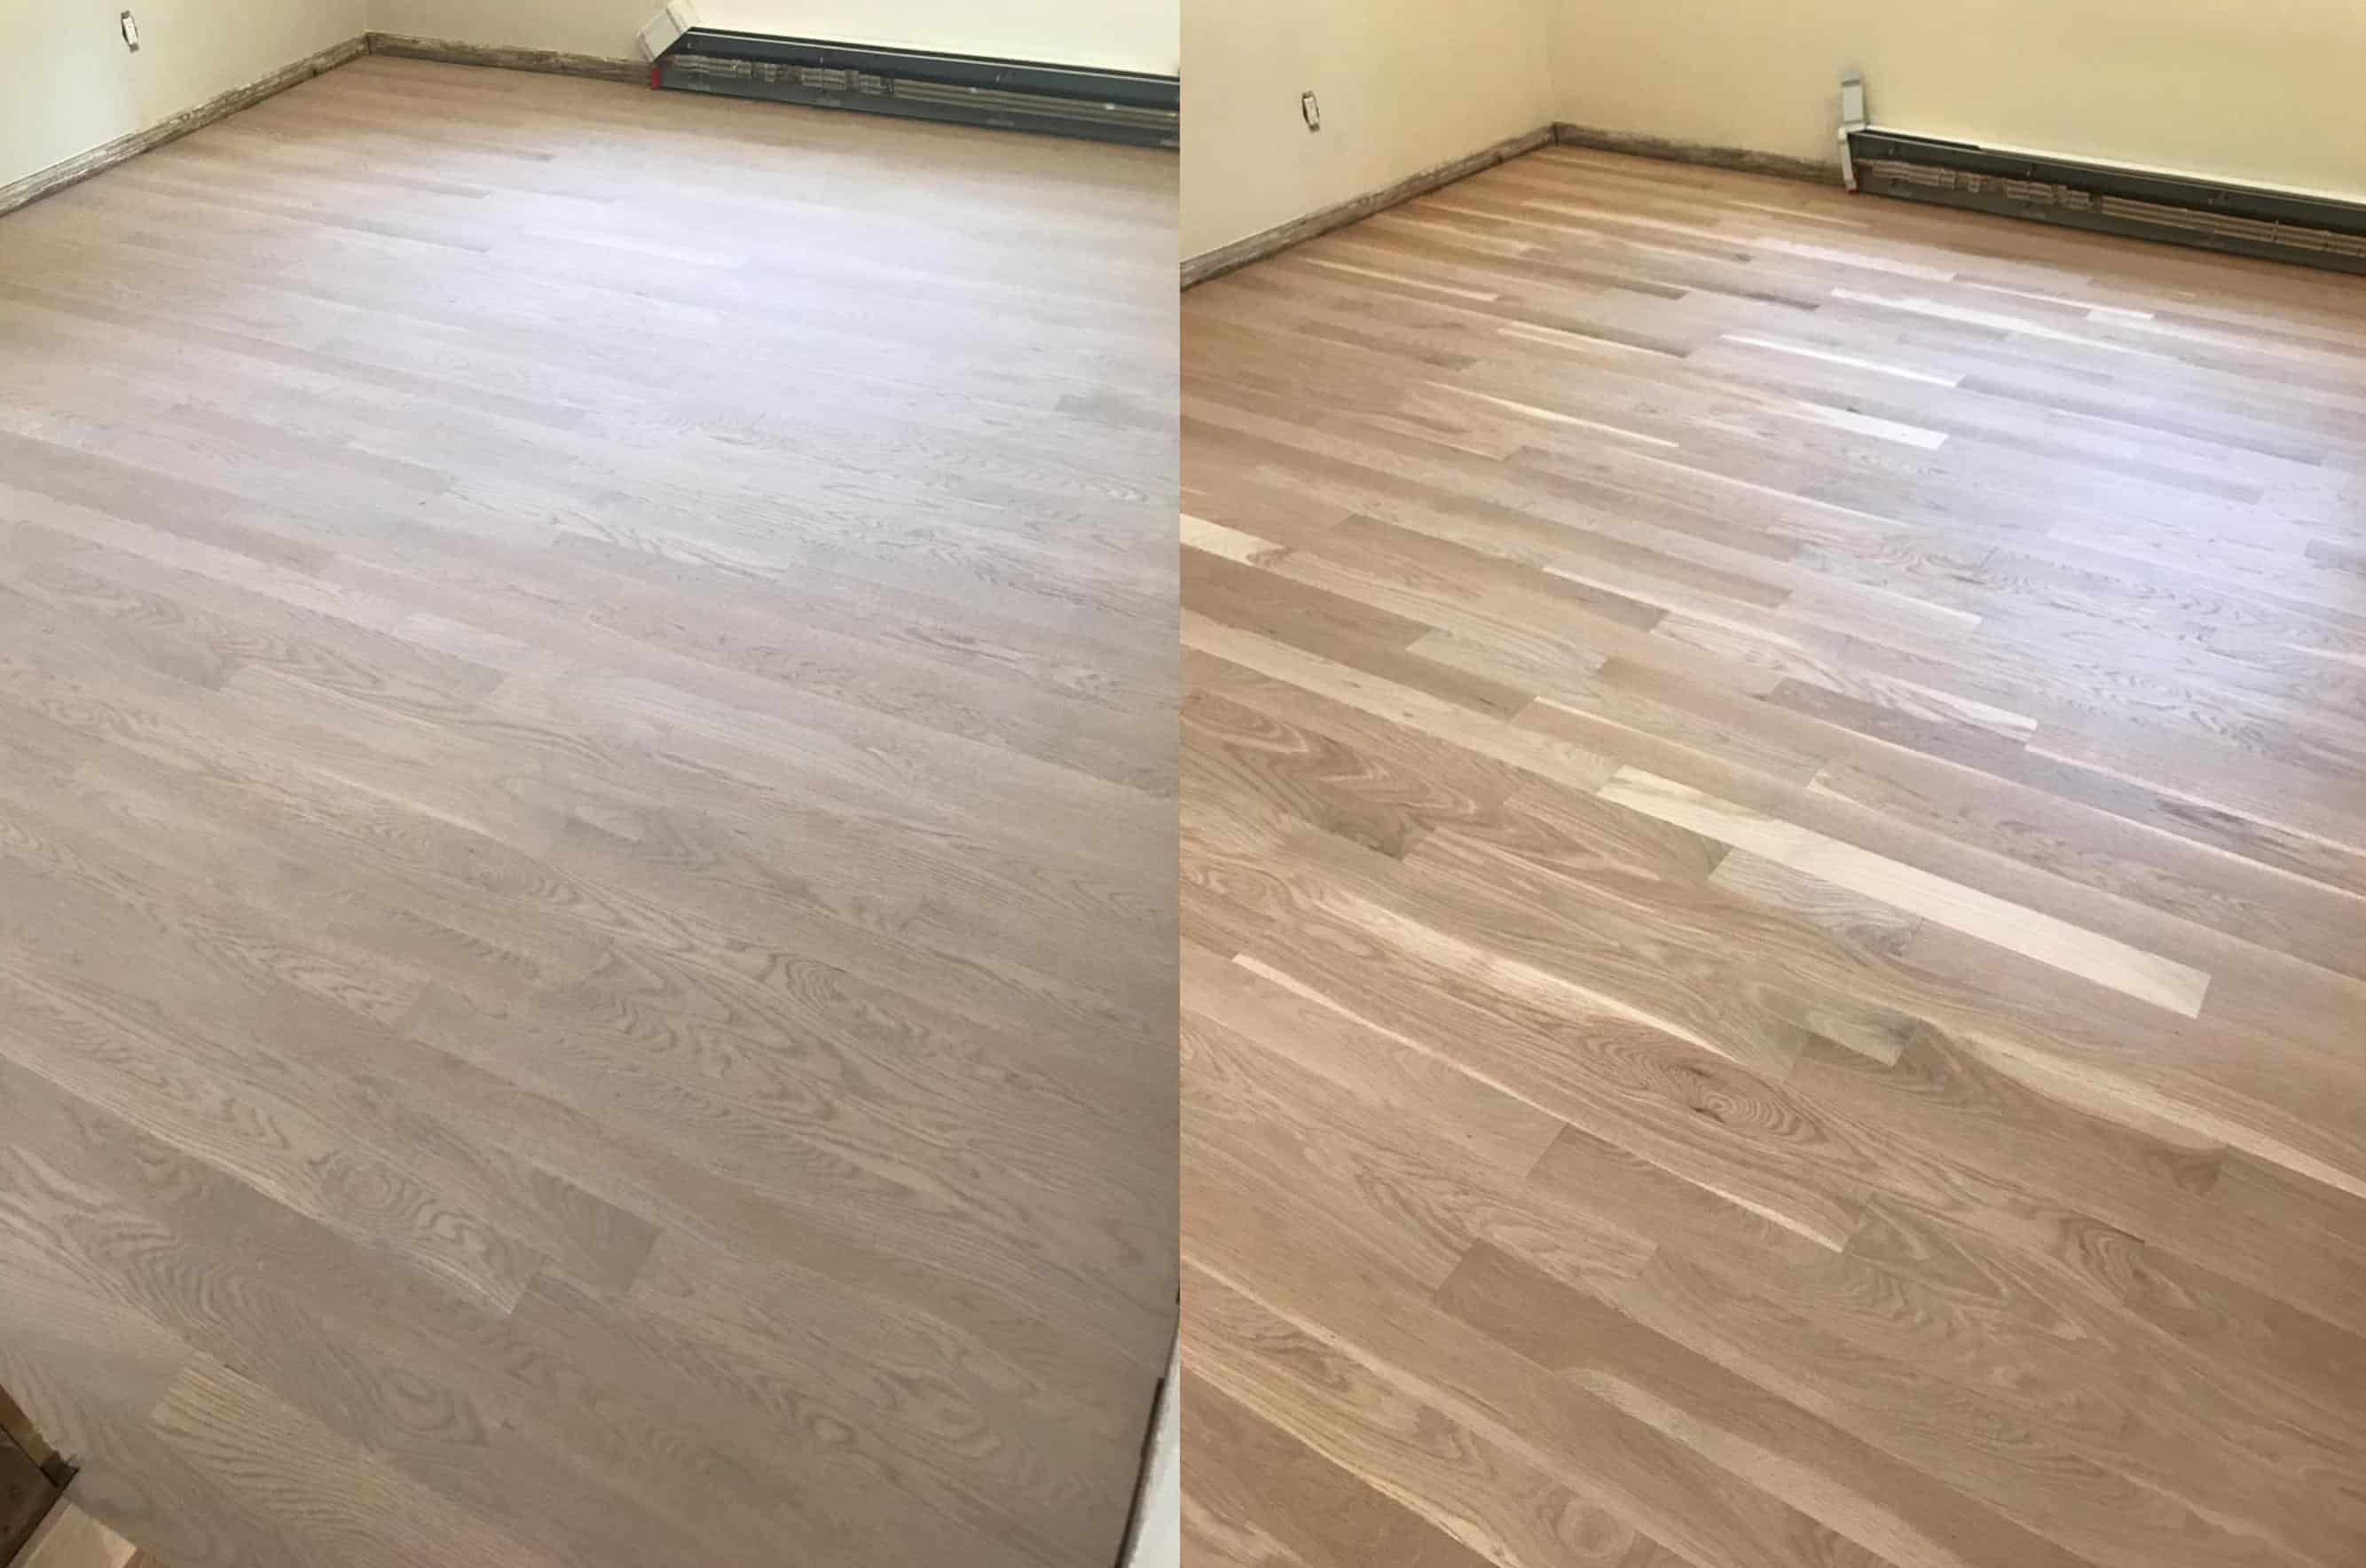 The Floors In Alexa S Room Look So Much Livelier And Brighter I Love Natural Beauty Of Wood Stain Completely Covered It Up